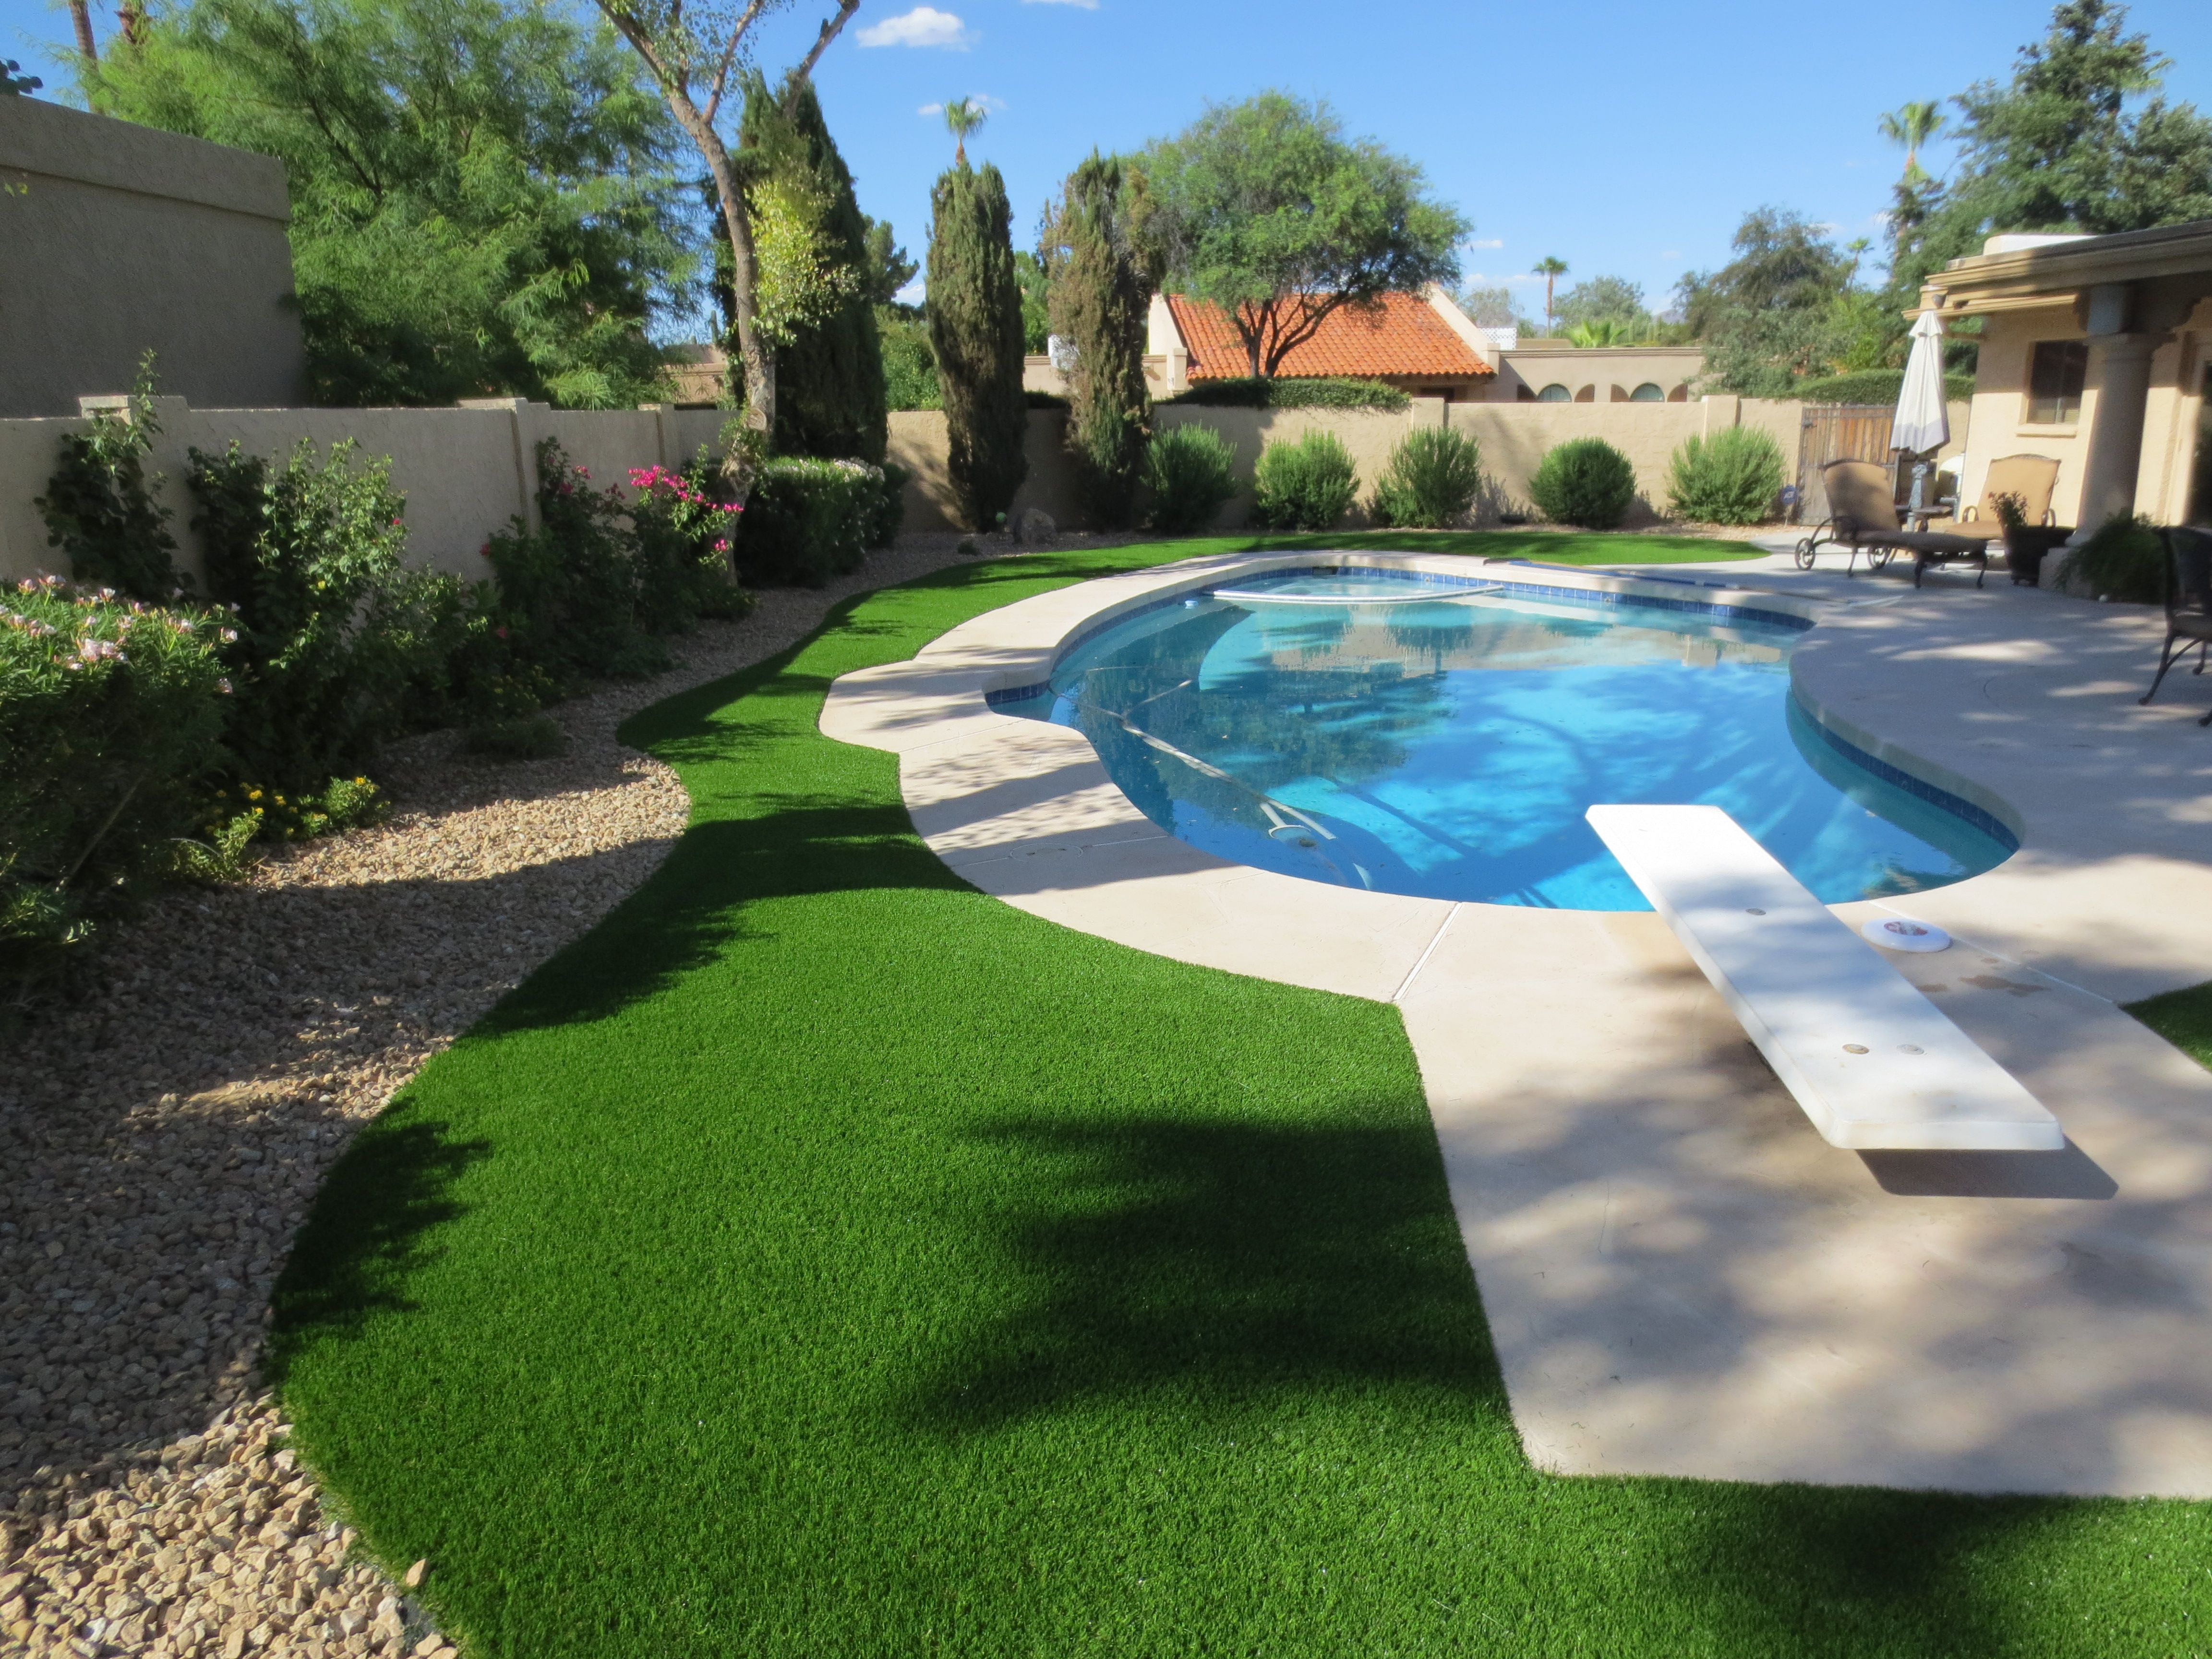 """10 Step Guide to Finding the """"Right Paver or Artificial Grass"""